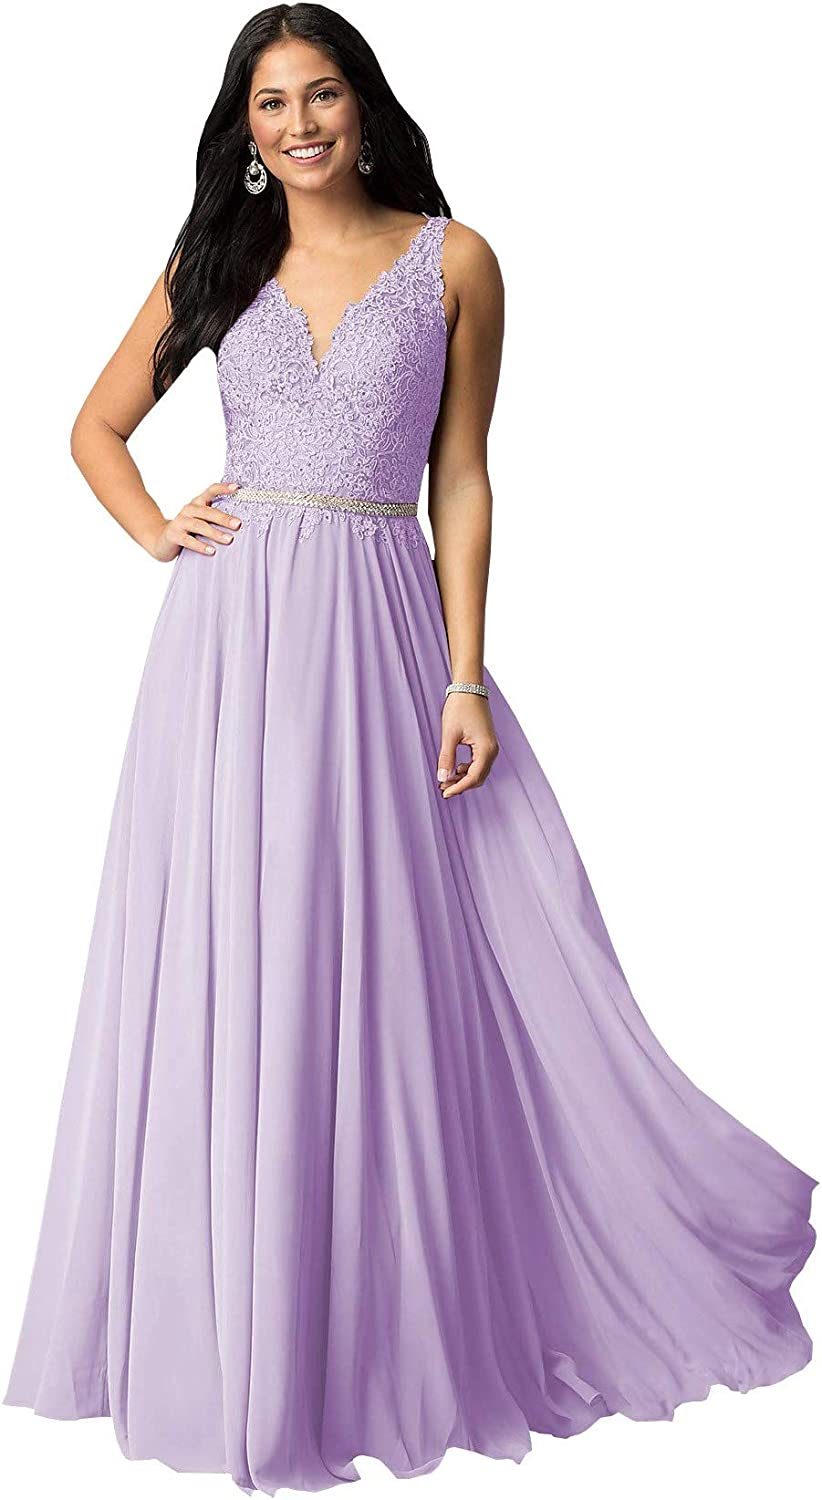 Women's Lace V Neck Bridesmaid Dresses Long for Wedding Chiffon Prom Party Skirt A-Line Formal Evening Gown